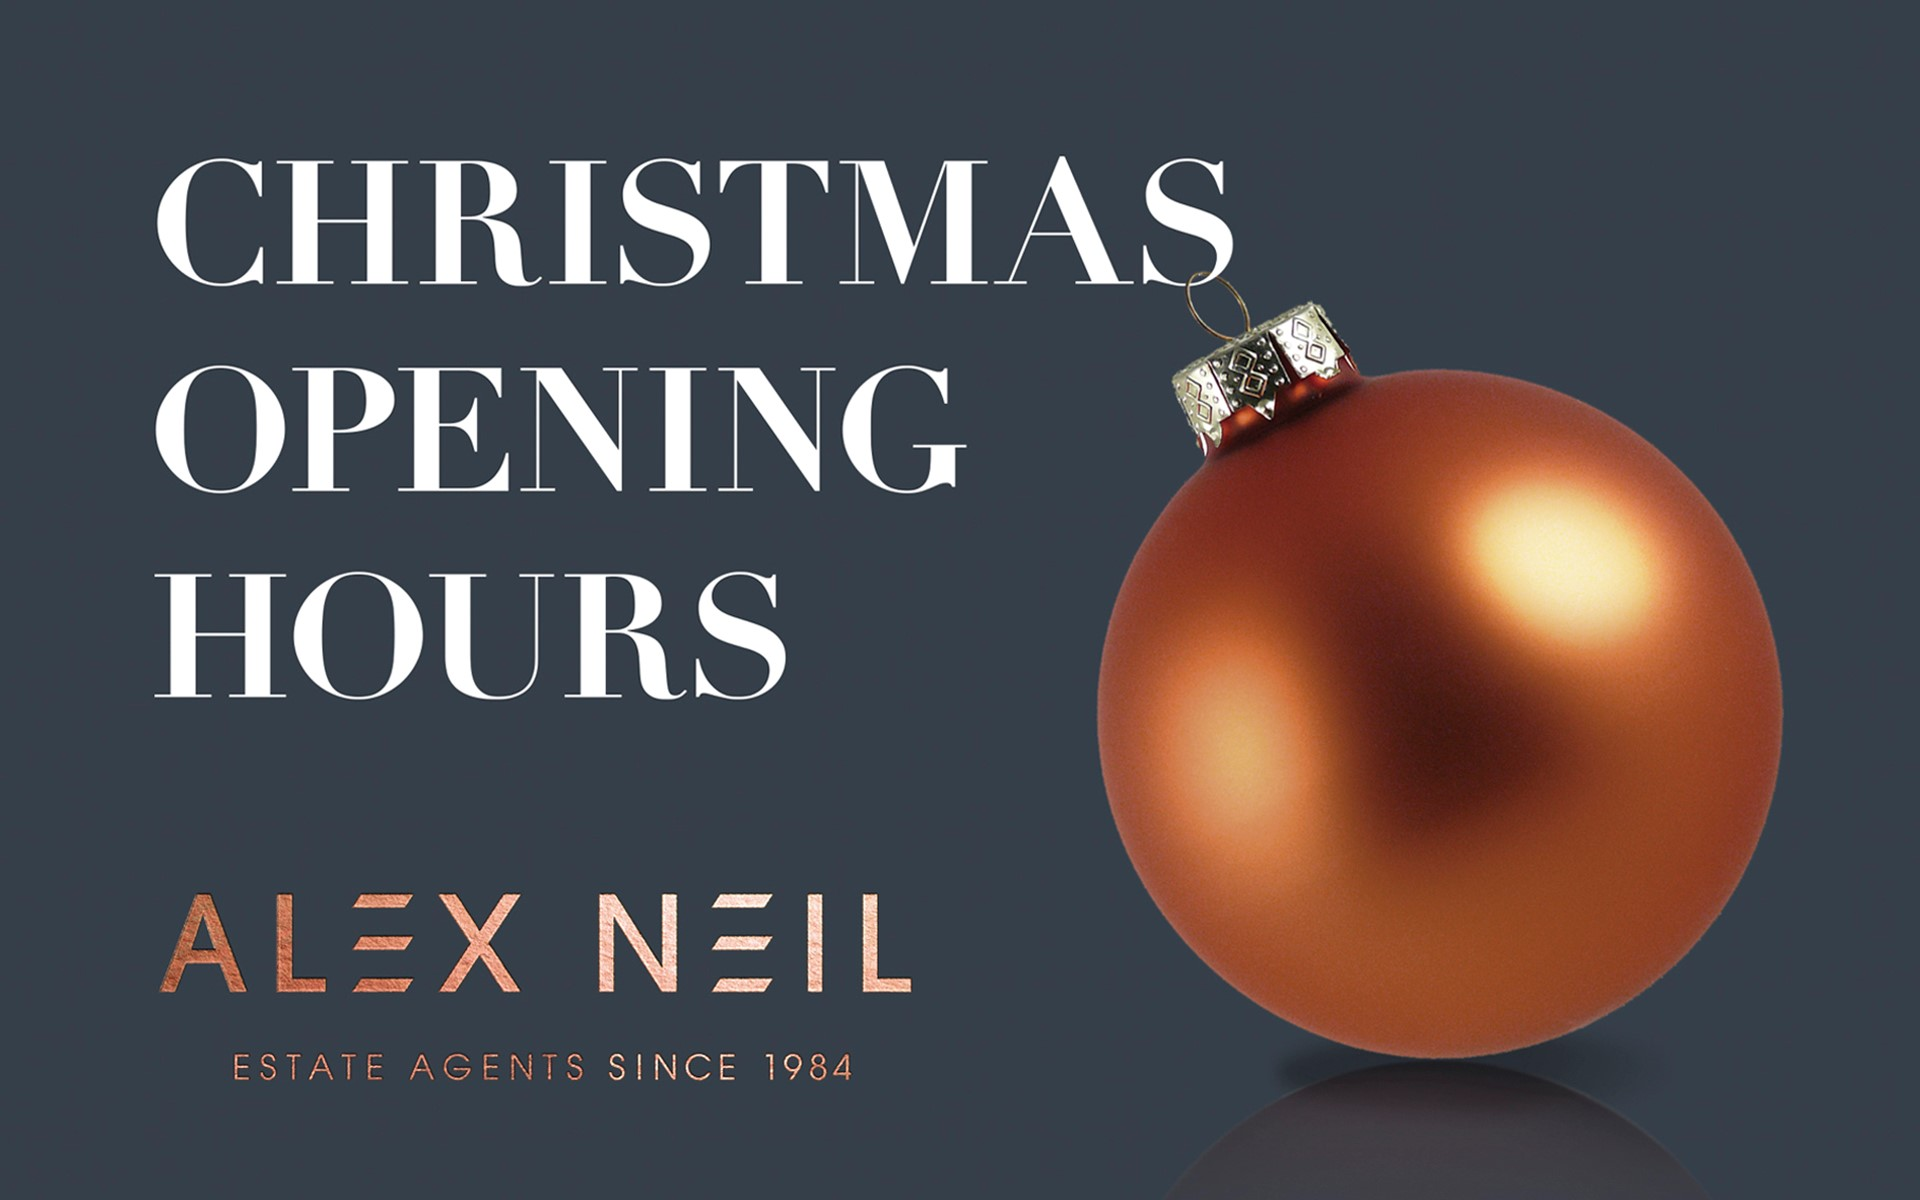 Alex Neil Christmas Decoration